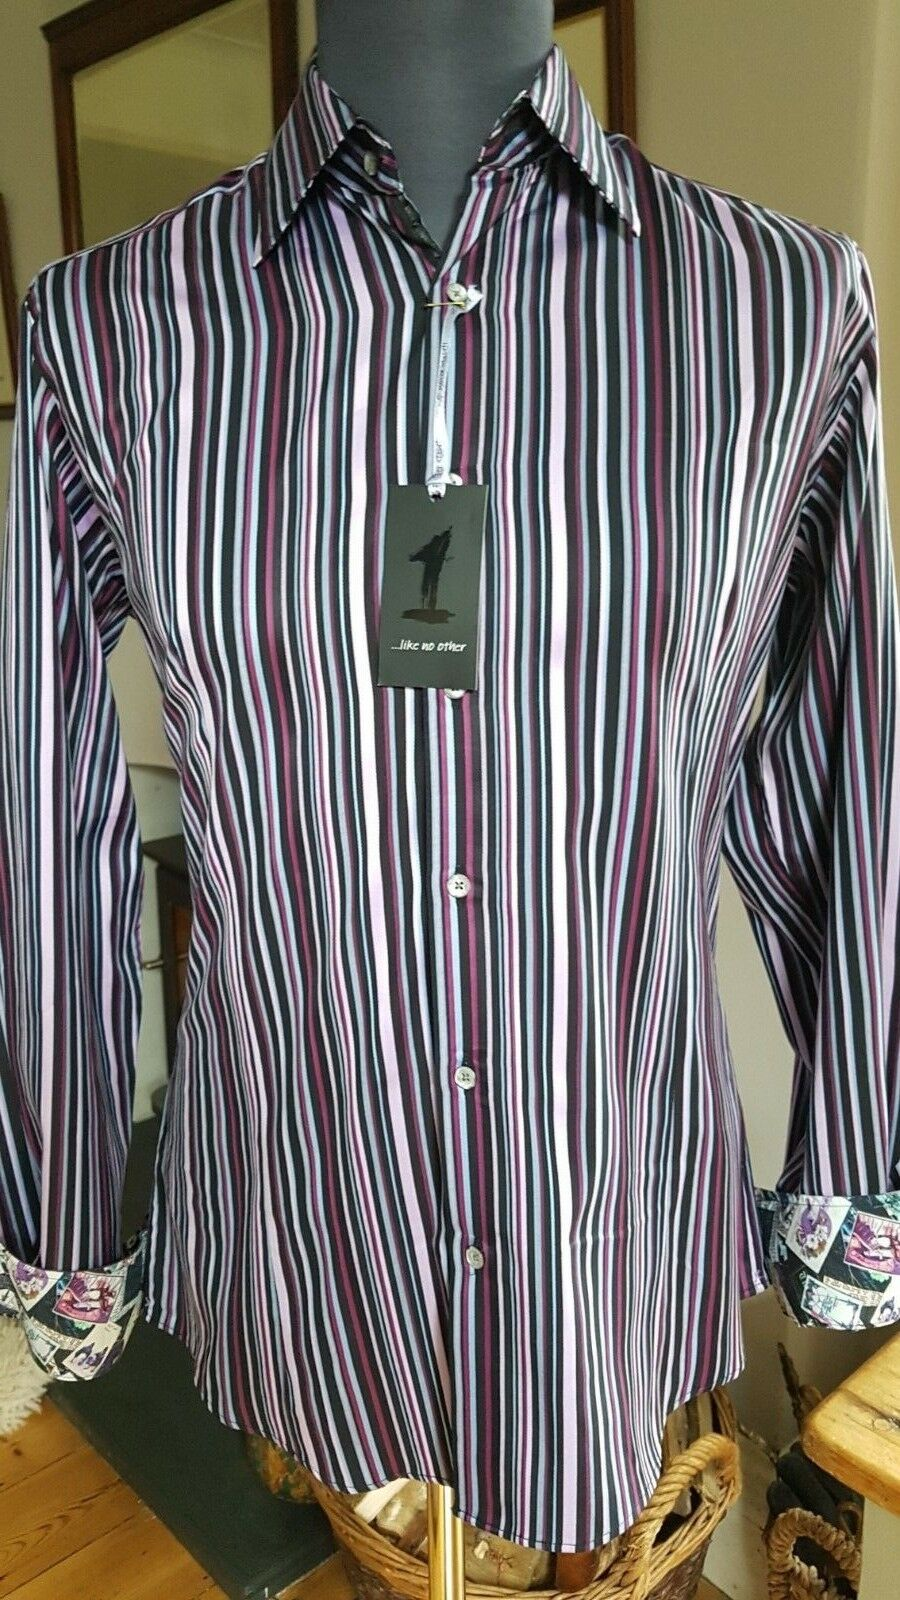 1 Like No Other men's slim fit shirt Multi Stripe.Size 2 M. RRP . 1 of 500.